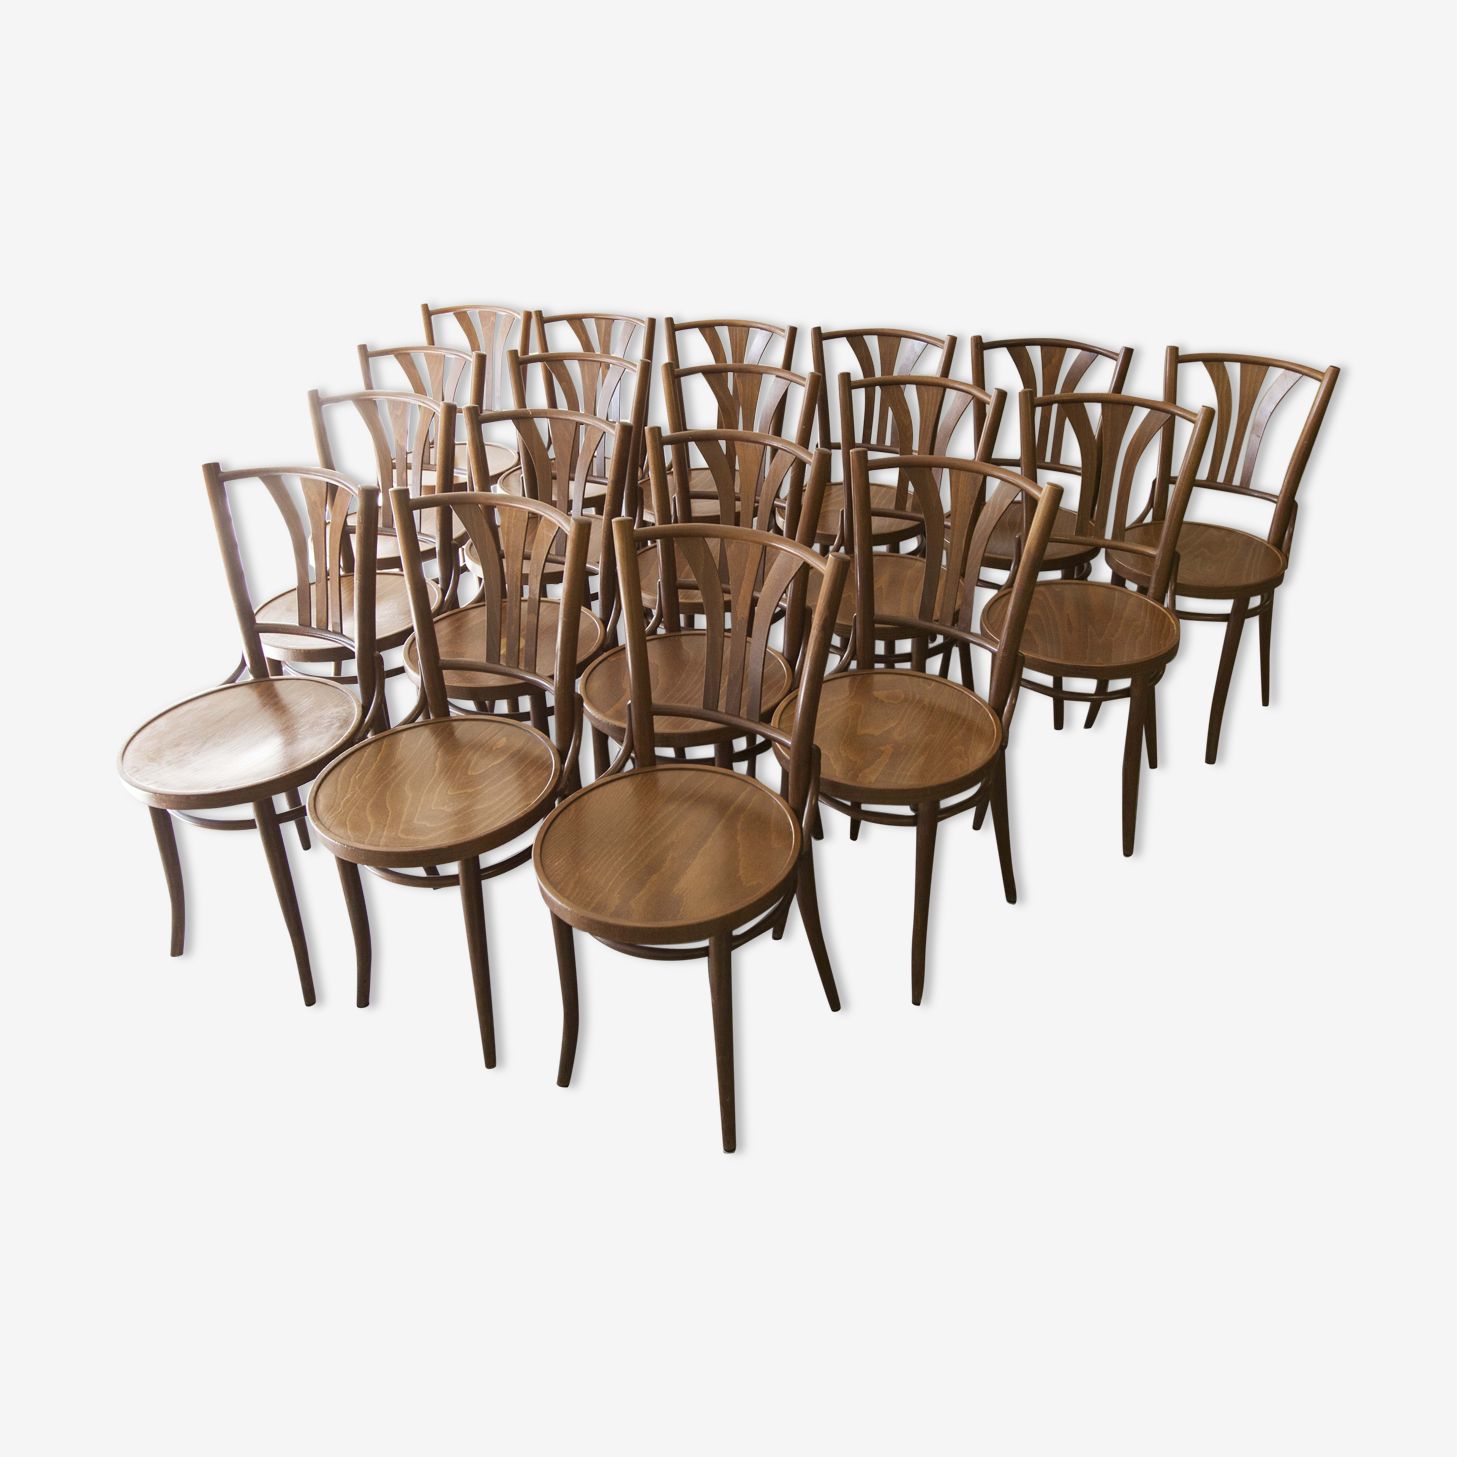 Set of 18 chairs Bistro